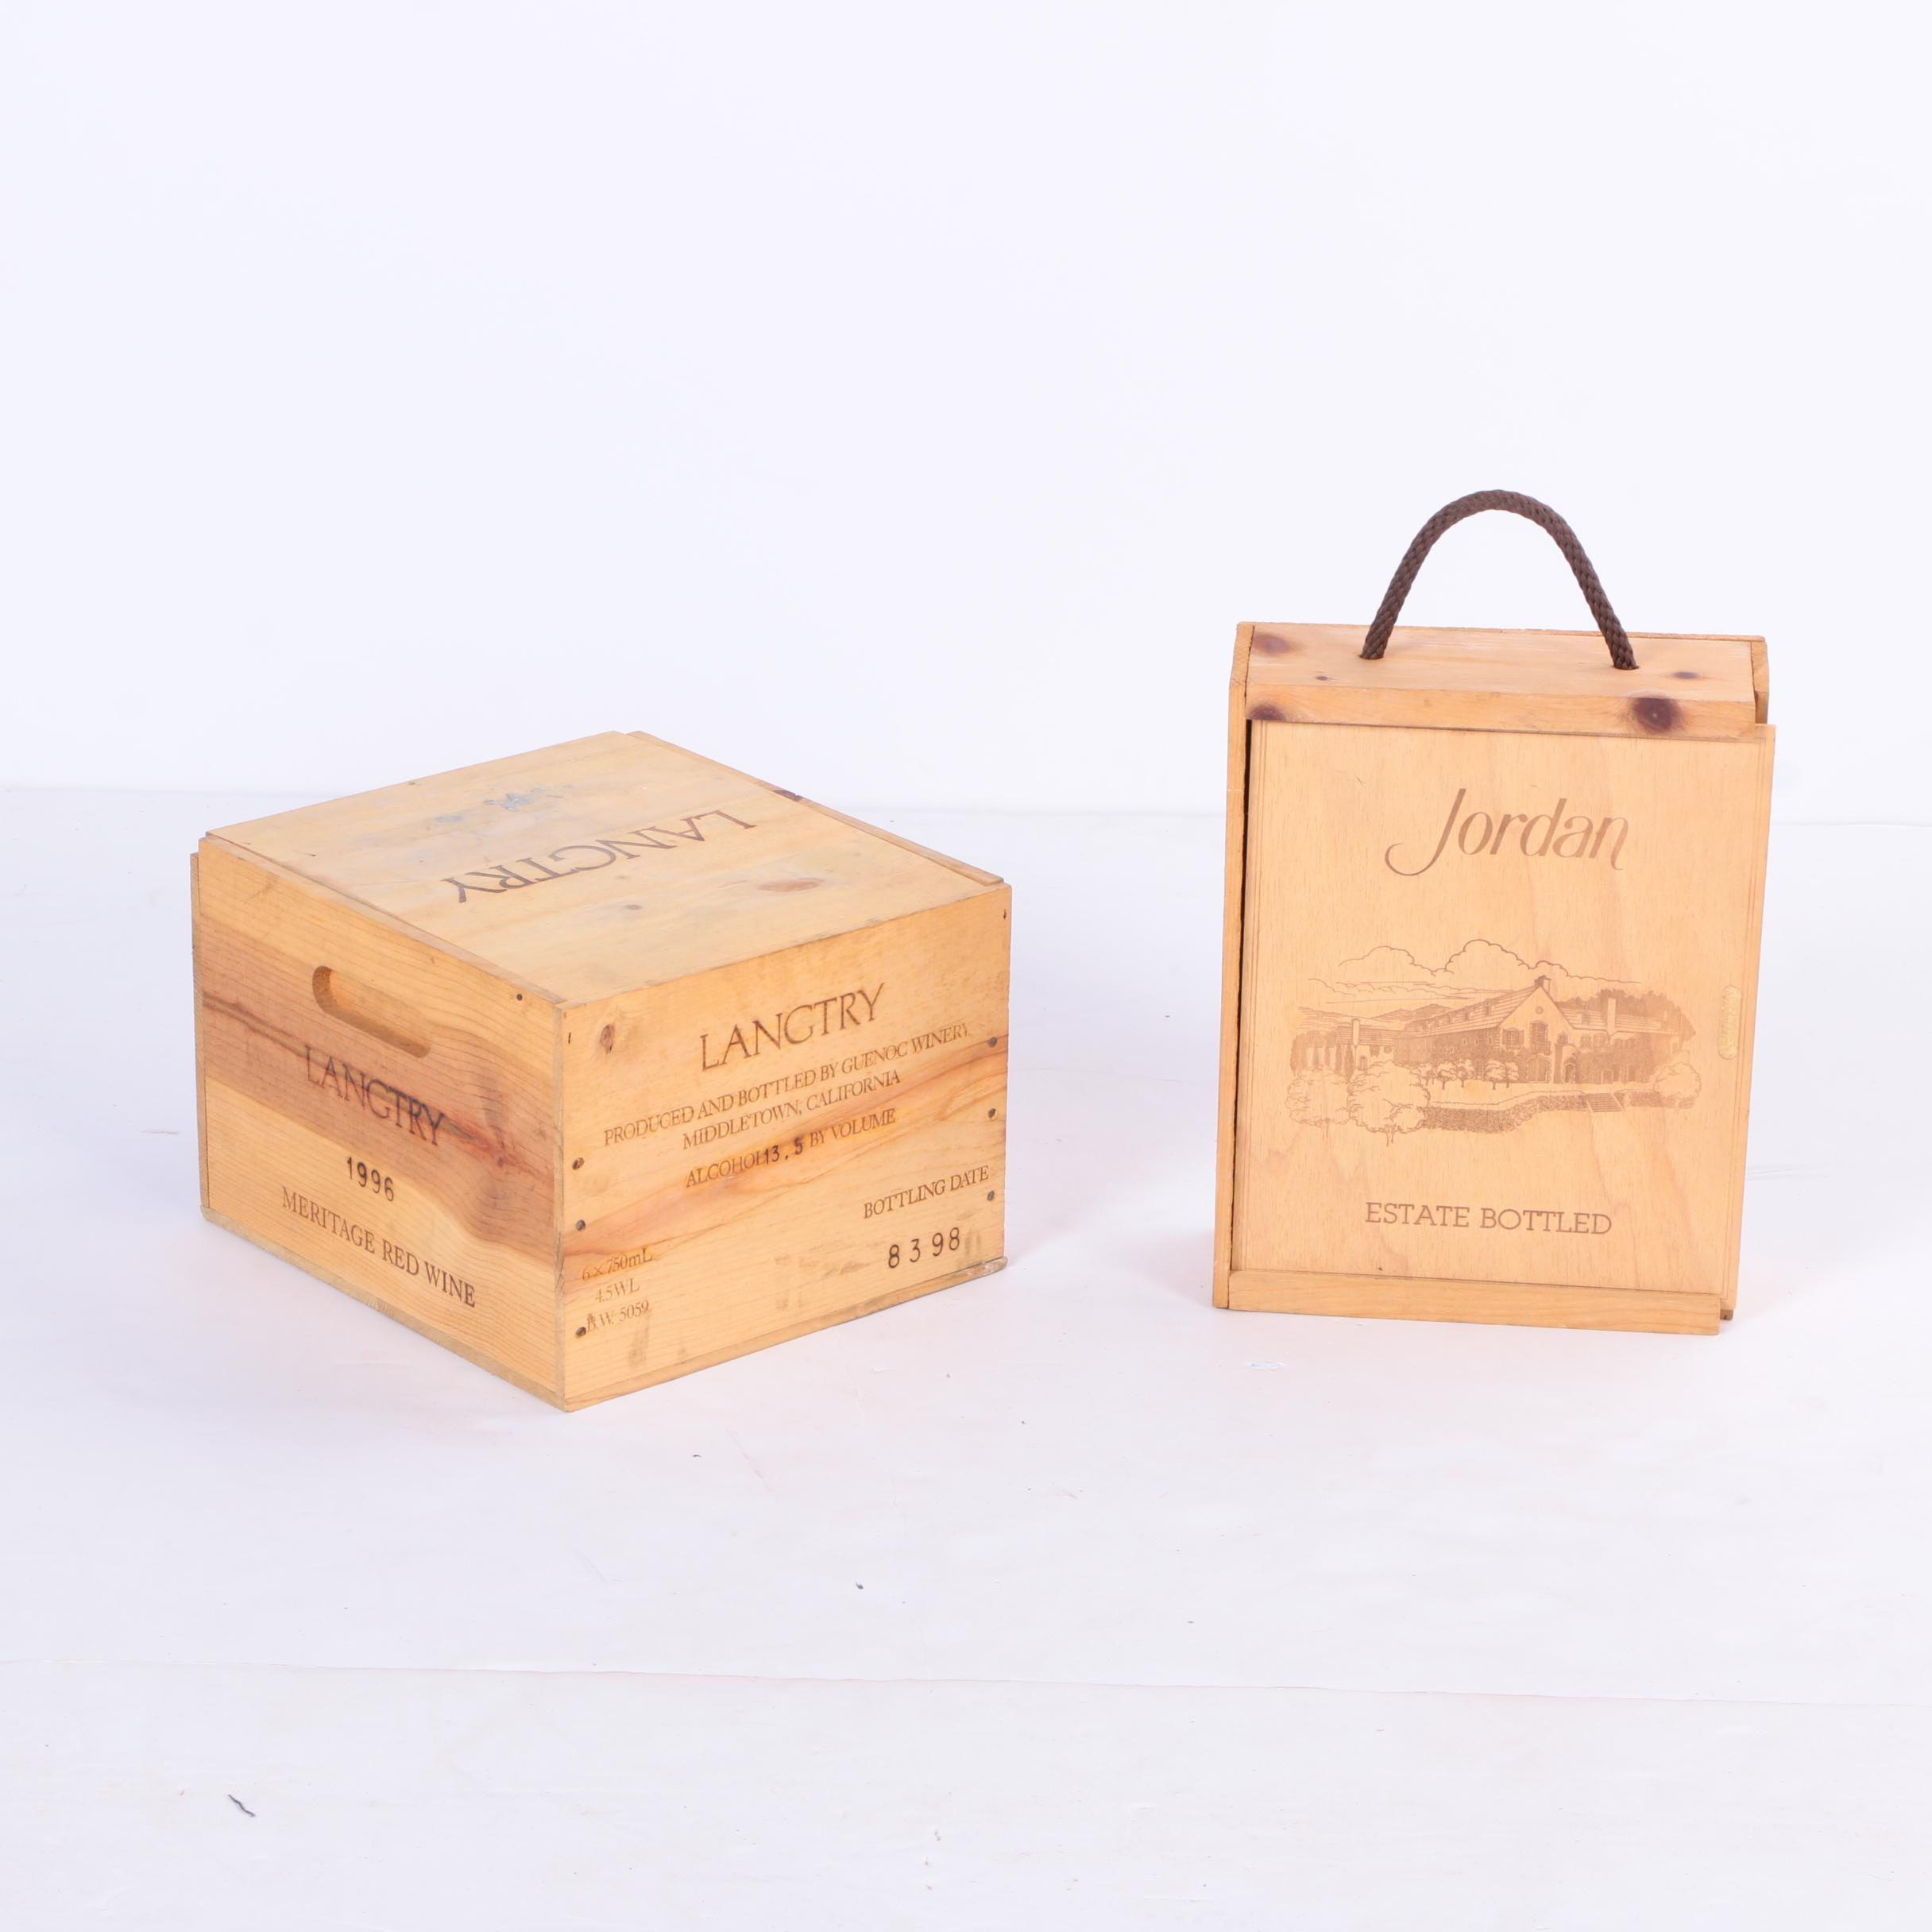 Two Jordan and Langtry Wooden Wine Crates